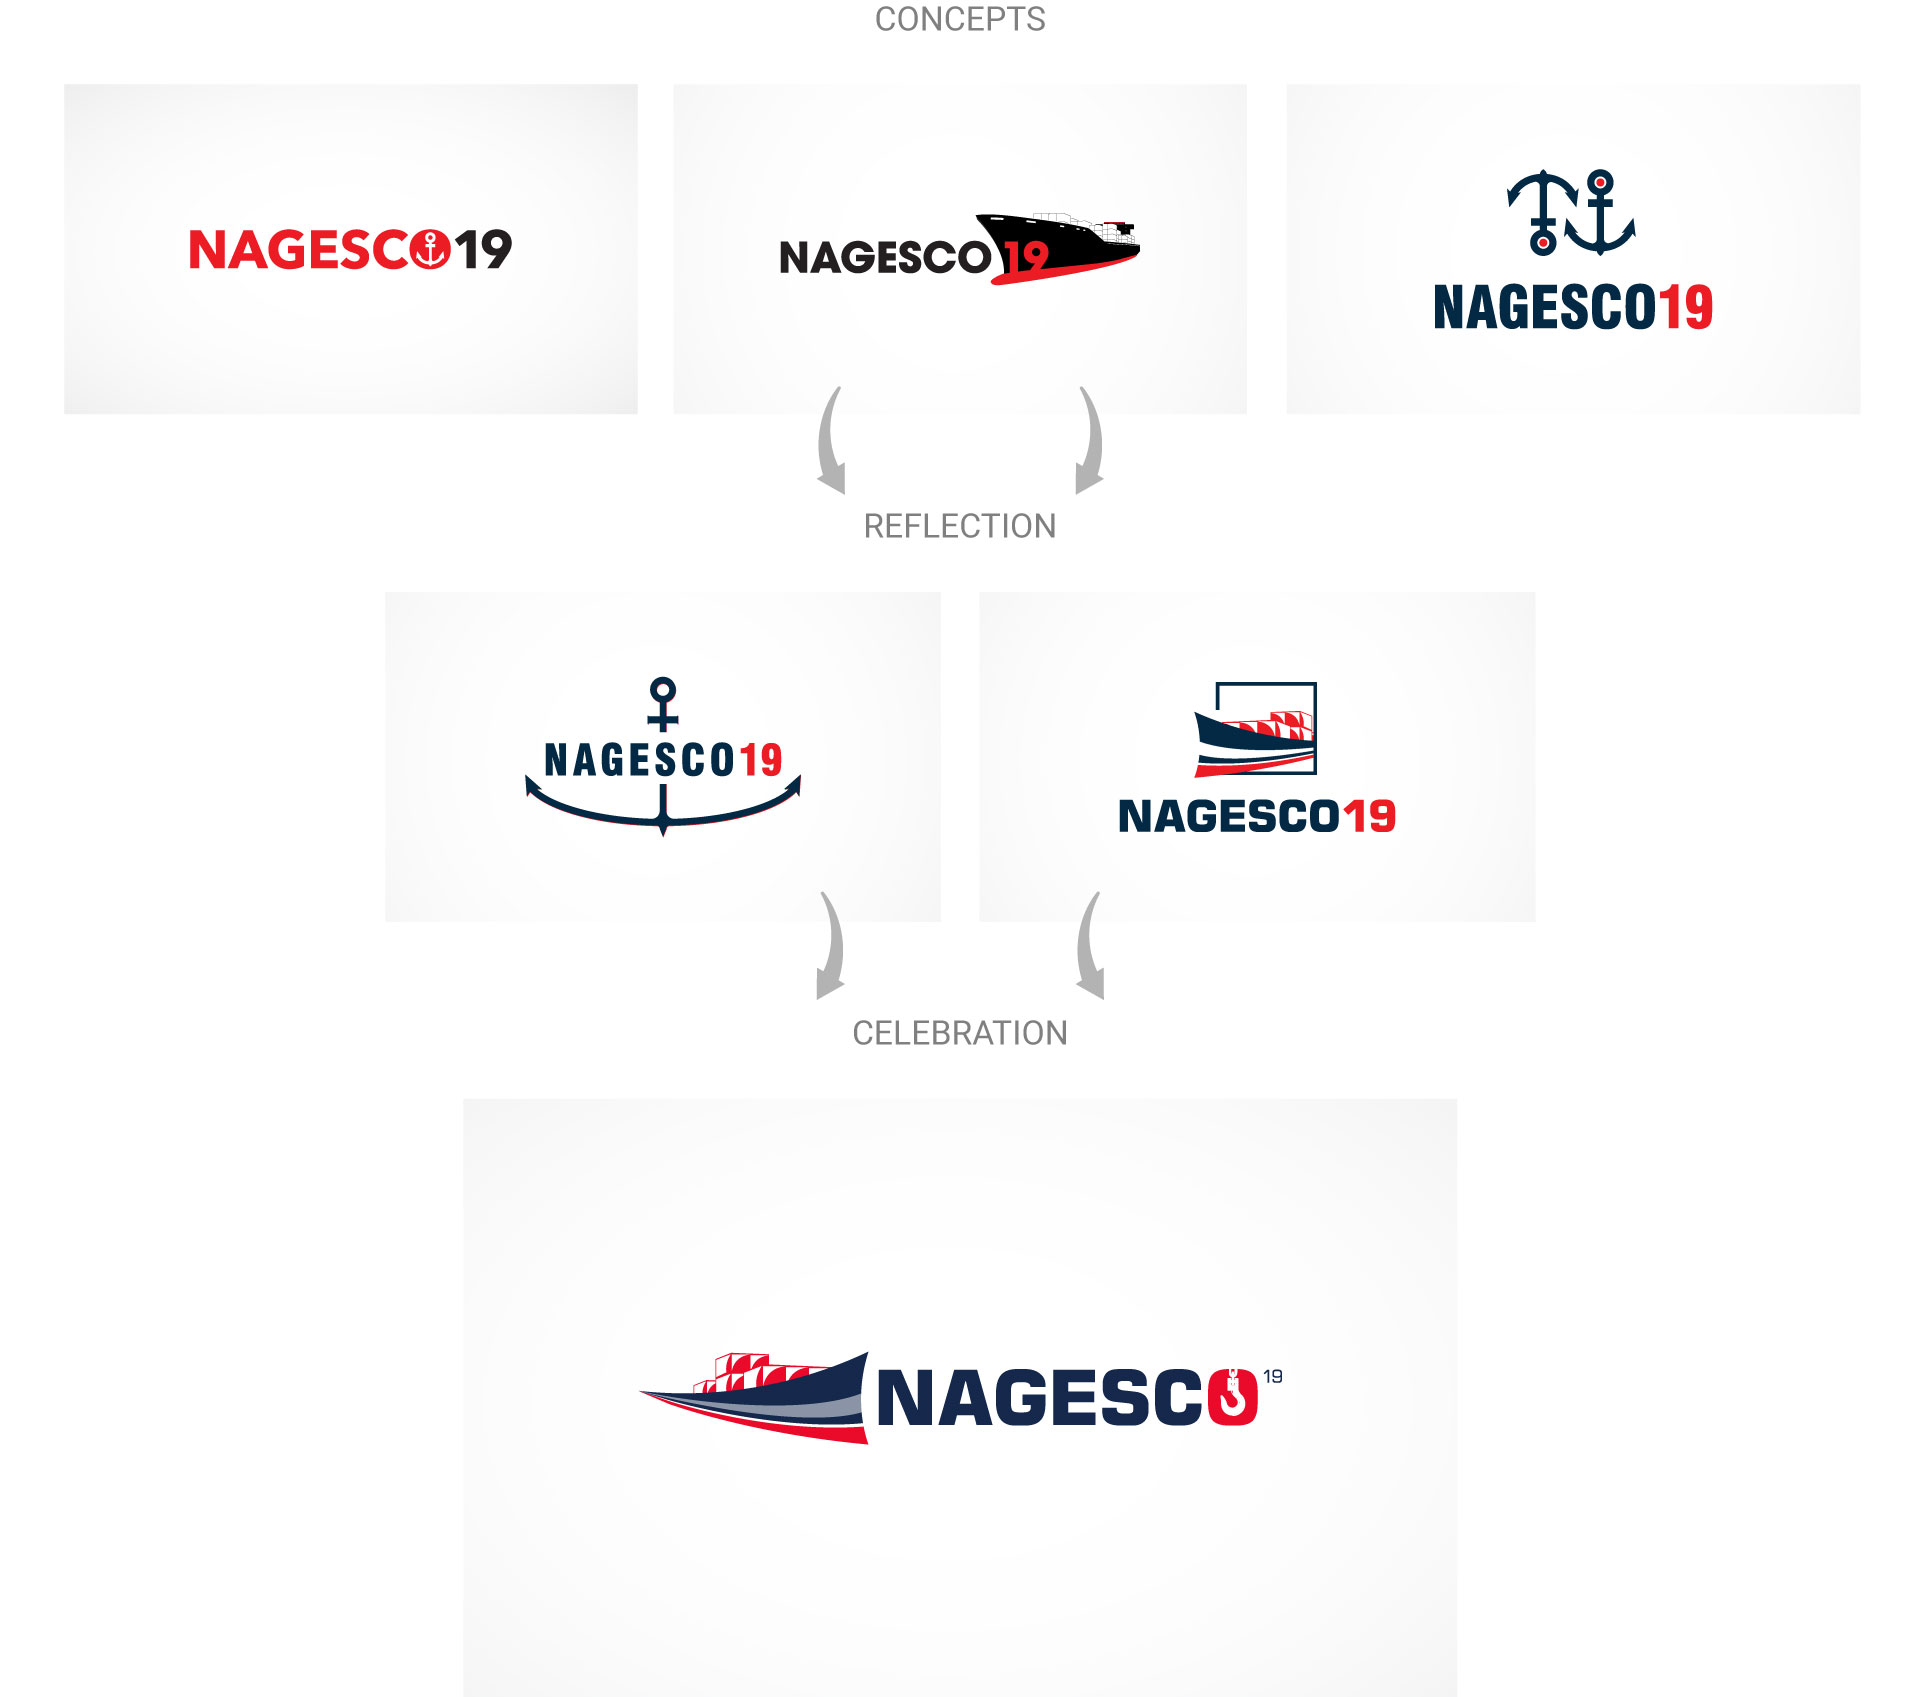 nagesco-brand-logo-design-by-mapleweb-vancouver-canada-container-mock